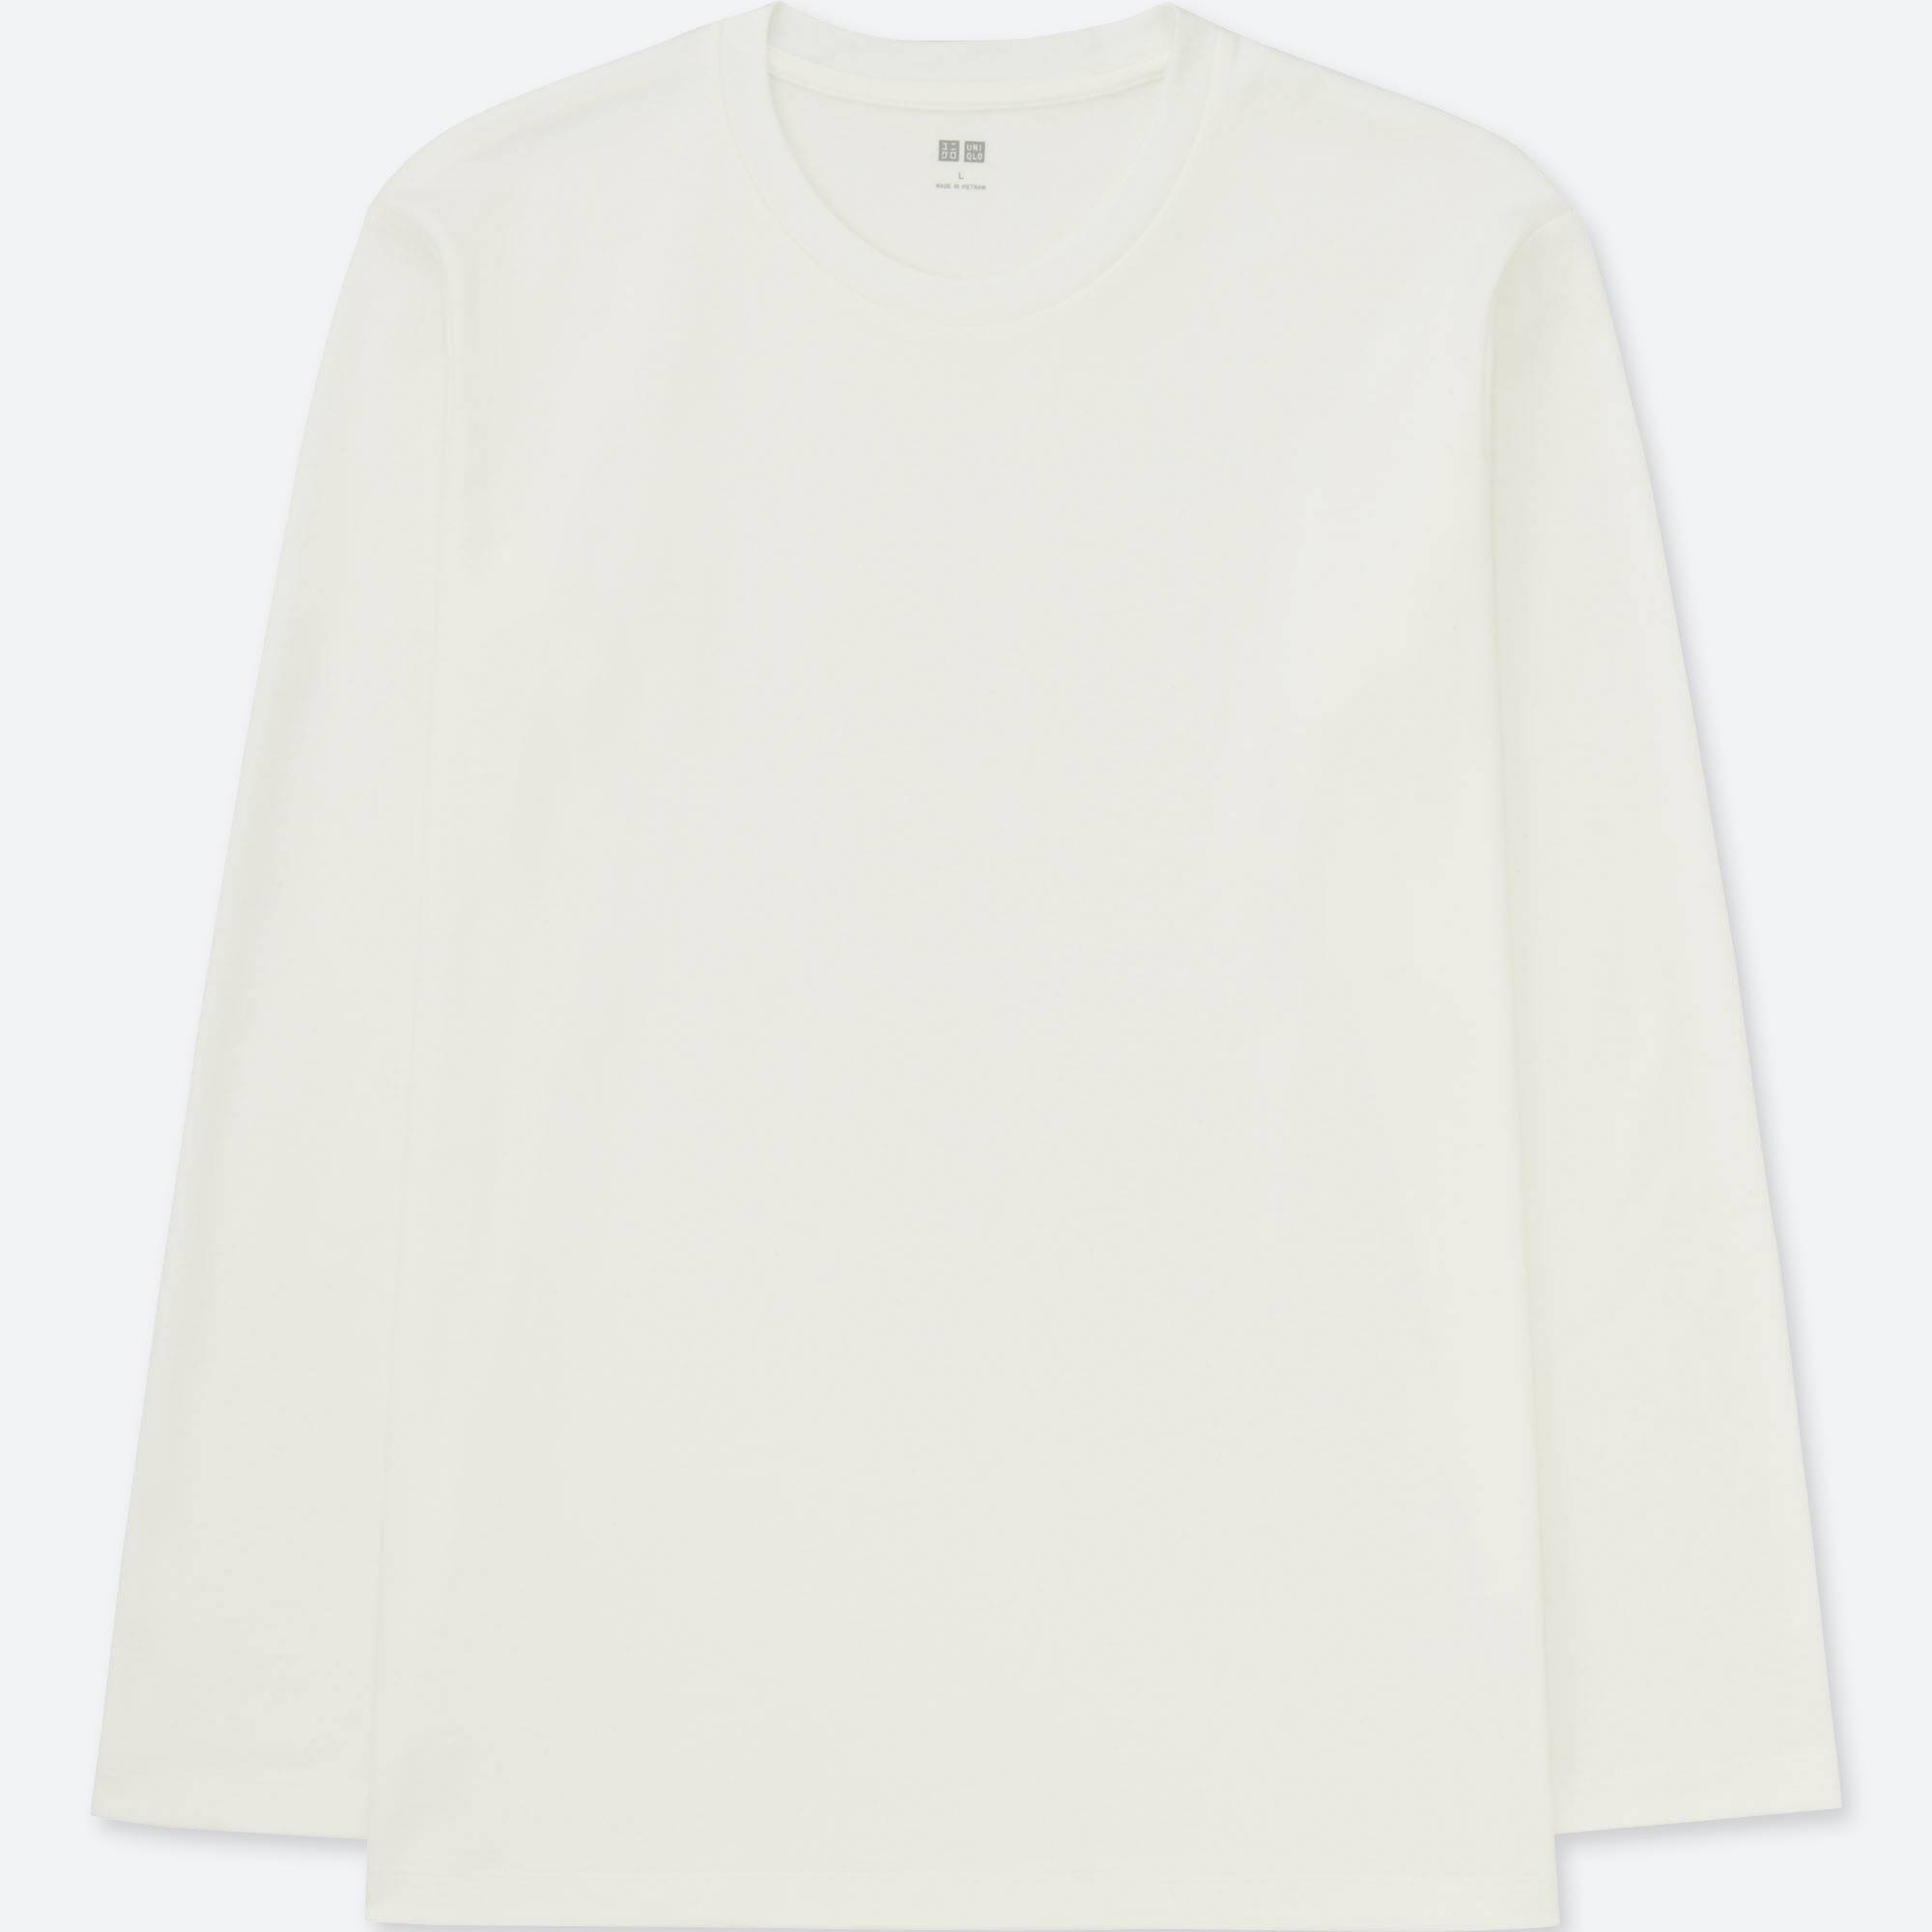 MEN SOFT TOUCH CREWNECK LONG-SLEEVE T-SHIRT | UNIQLO US